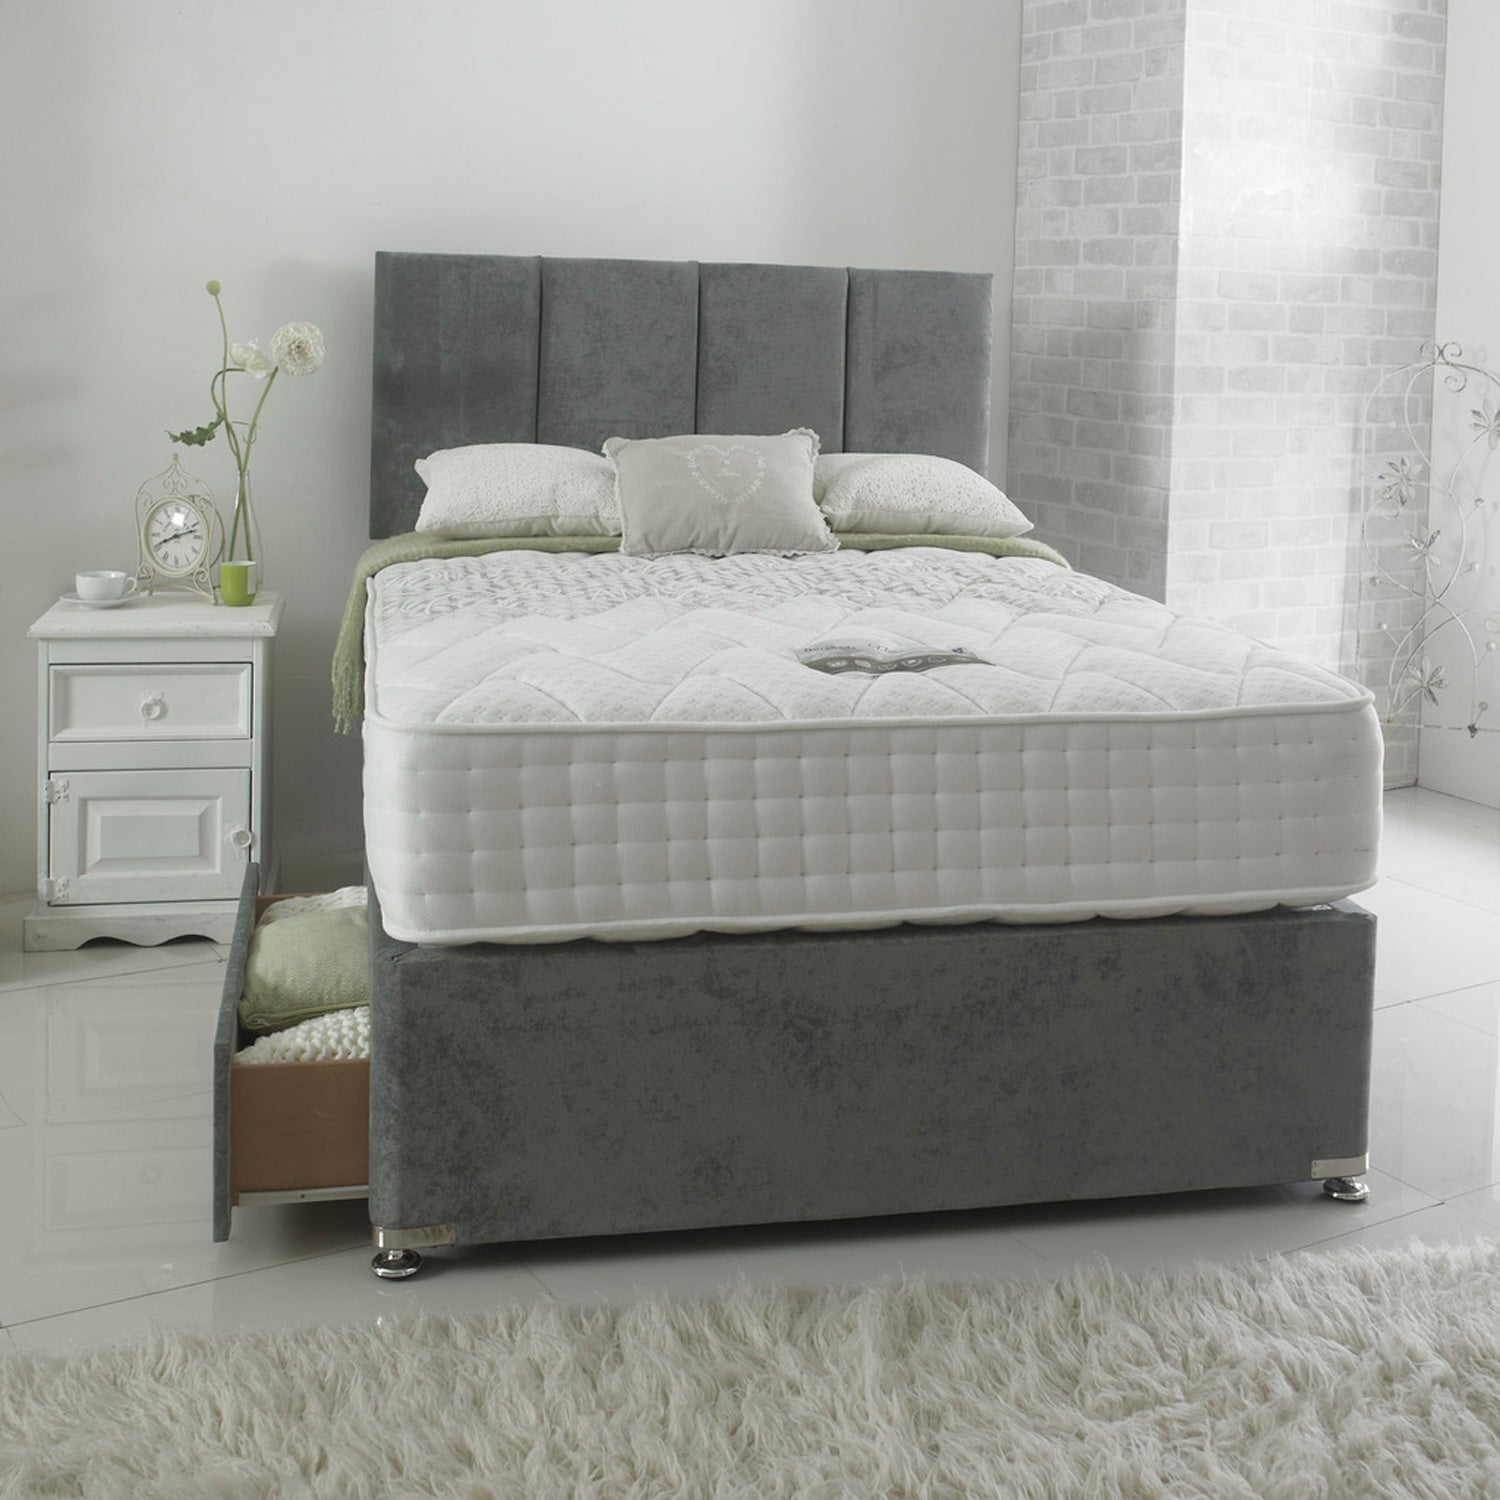 Nimbus 1000 Luxury Divan Set (Mattress = Medium)